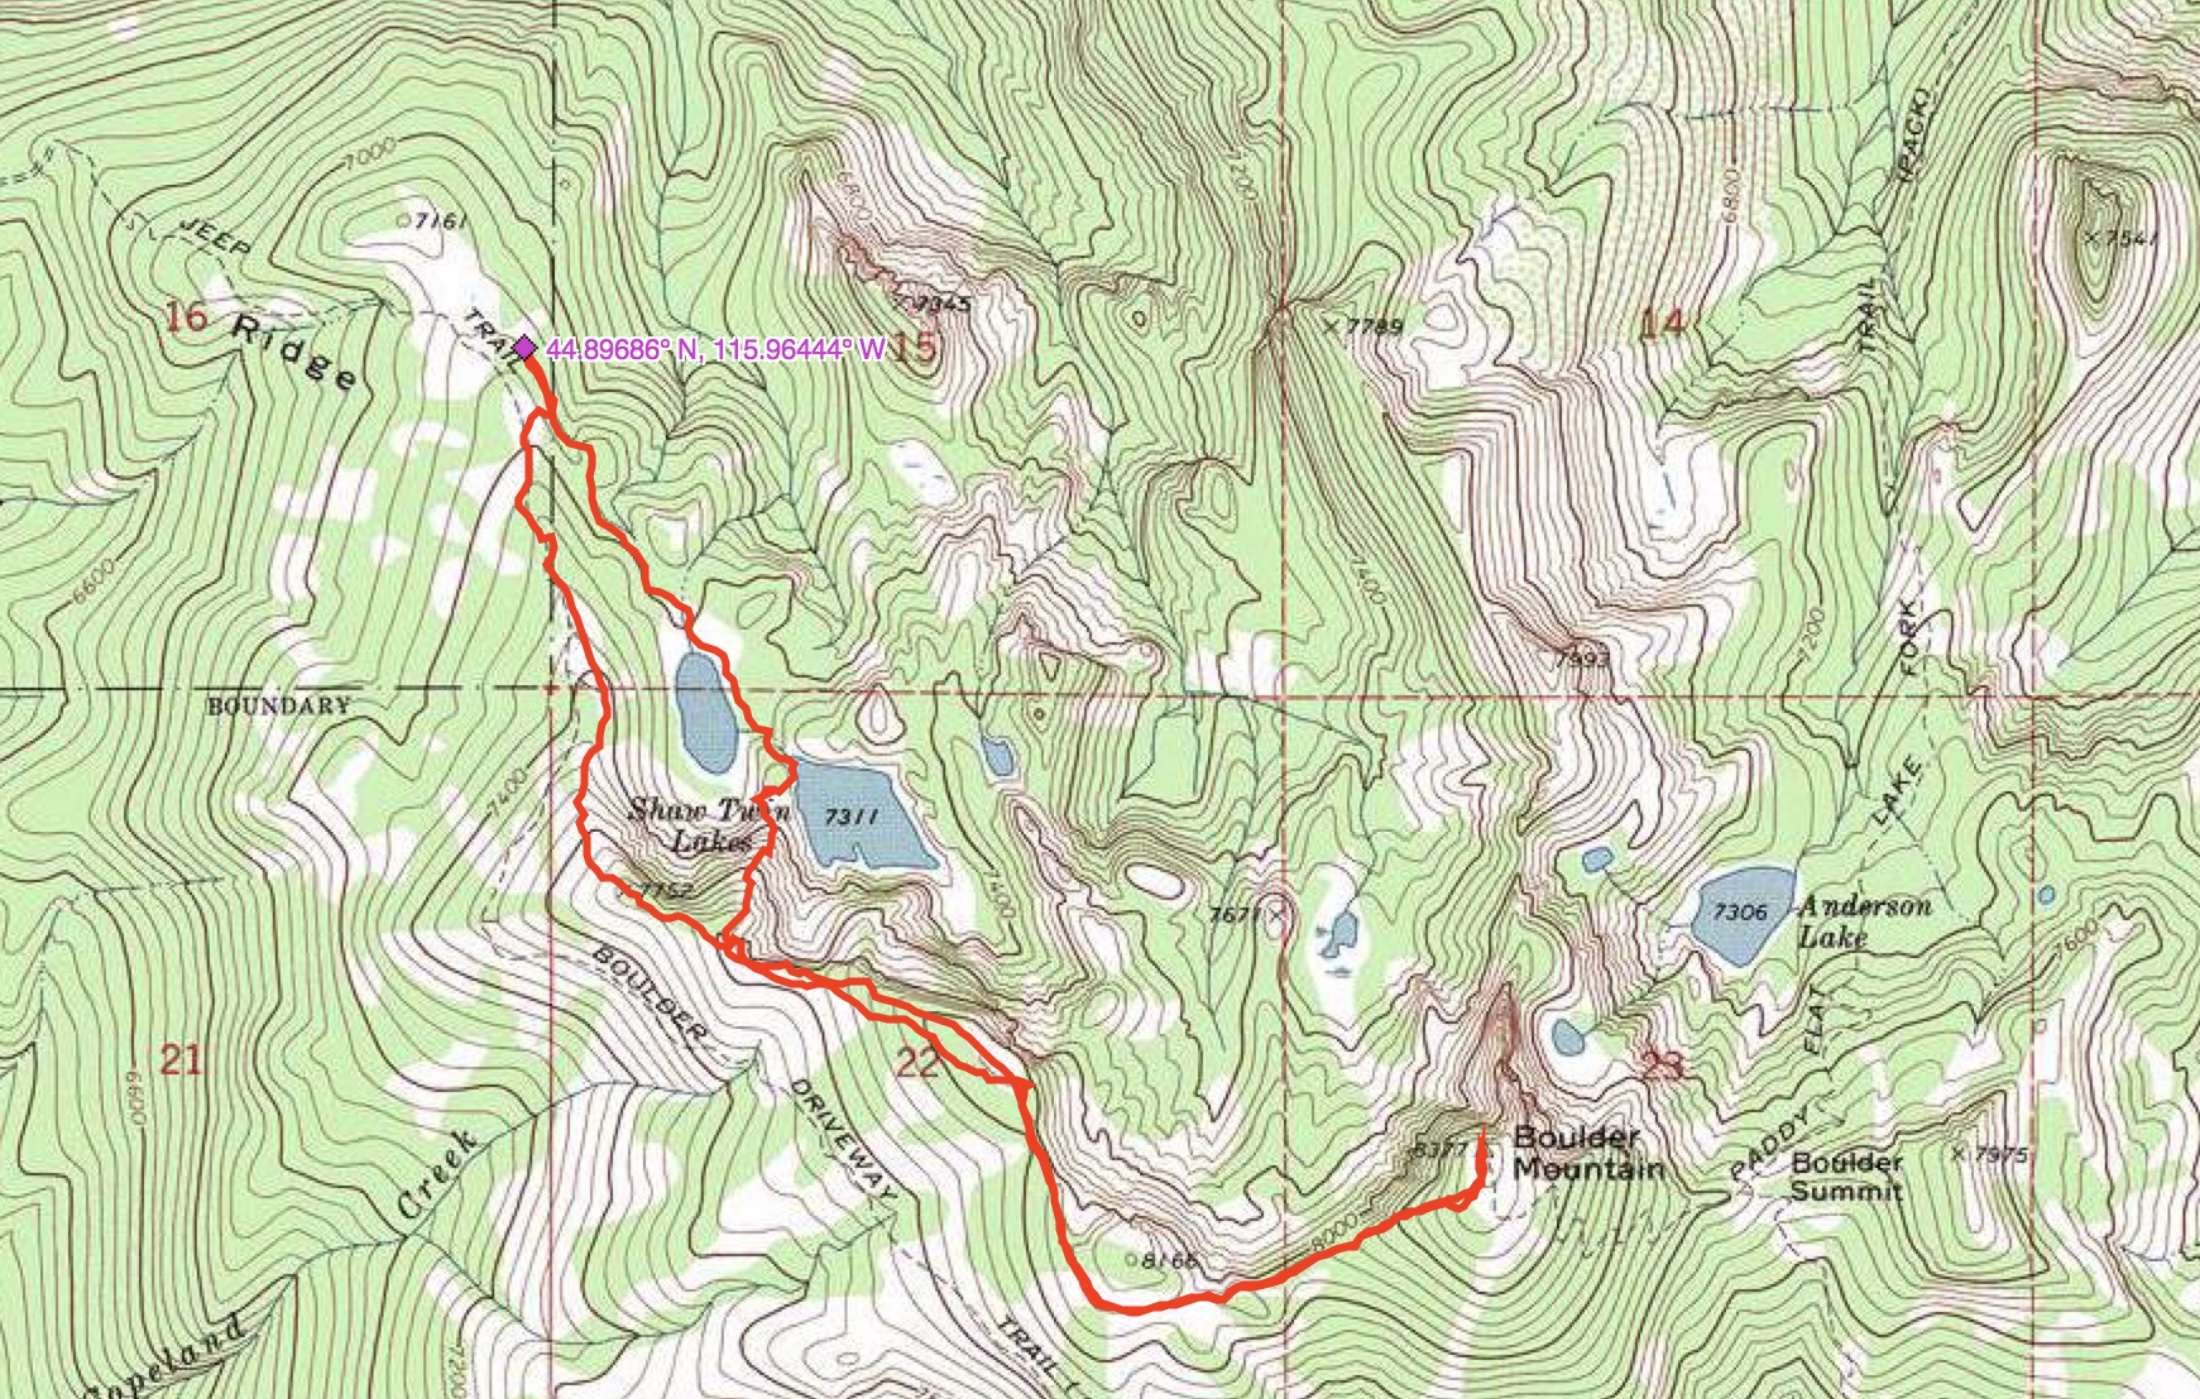 John Platt's Northwest Ridge route mapped out. Read John's trip report for further details.